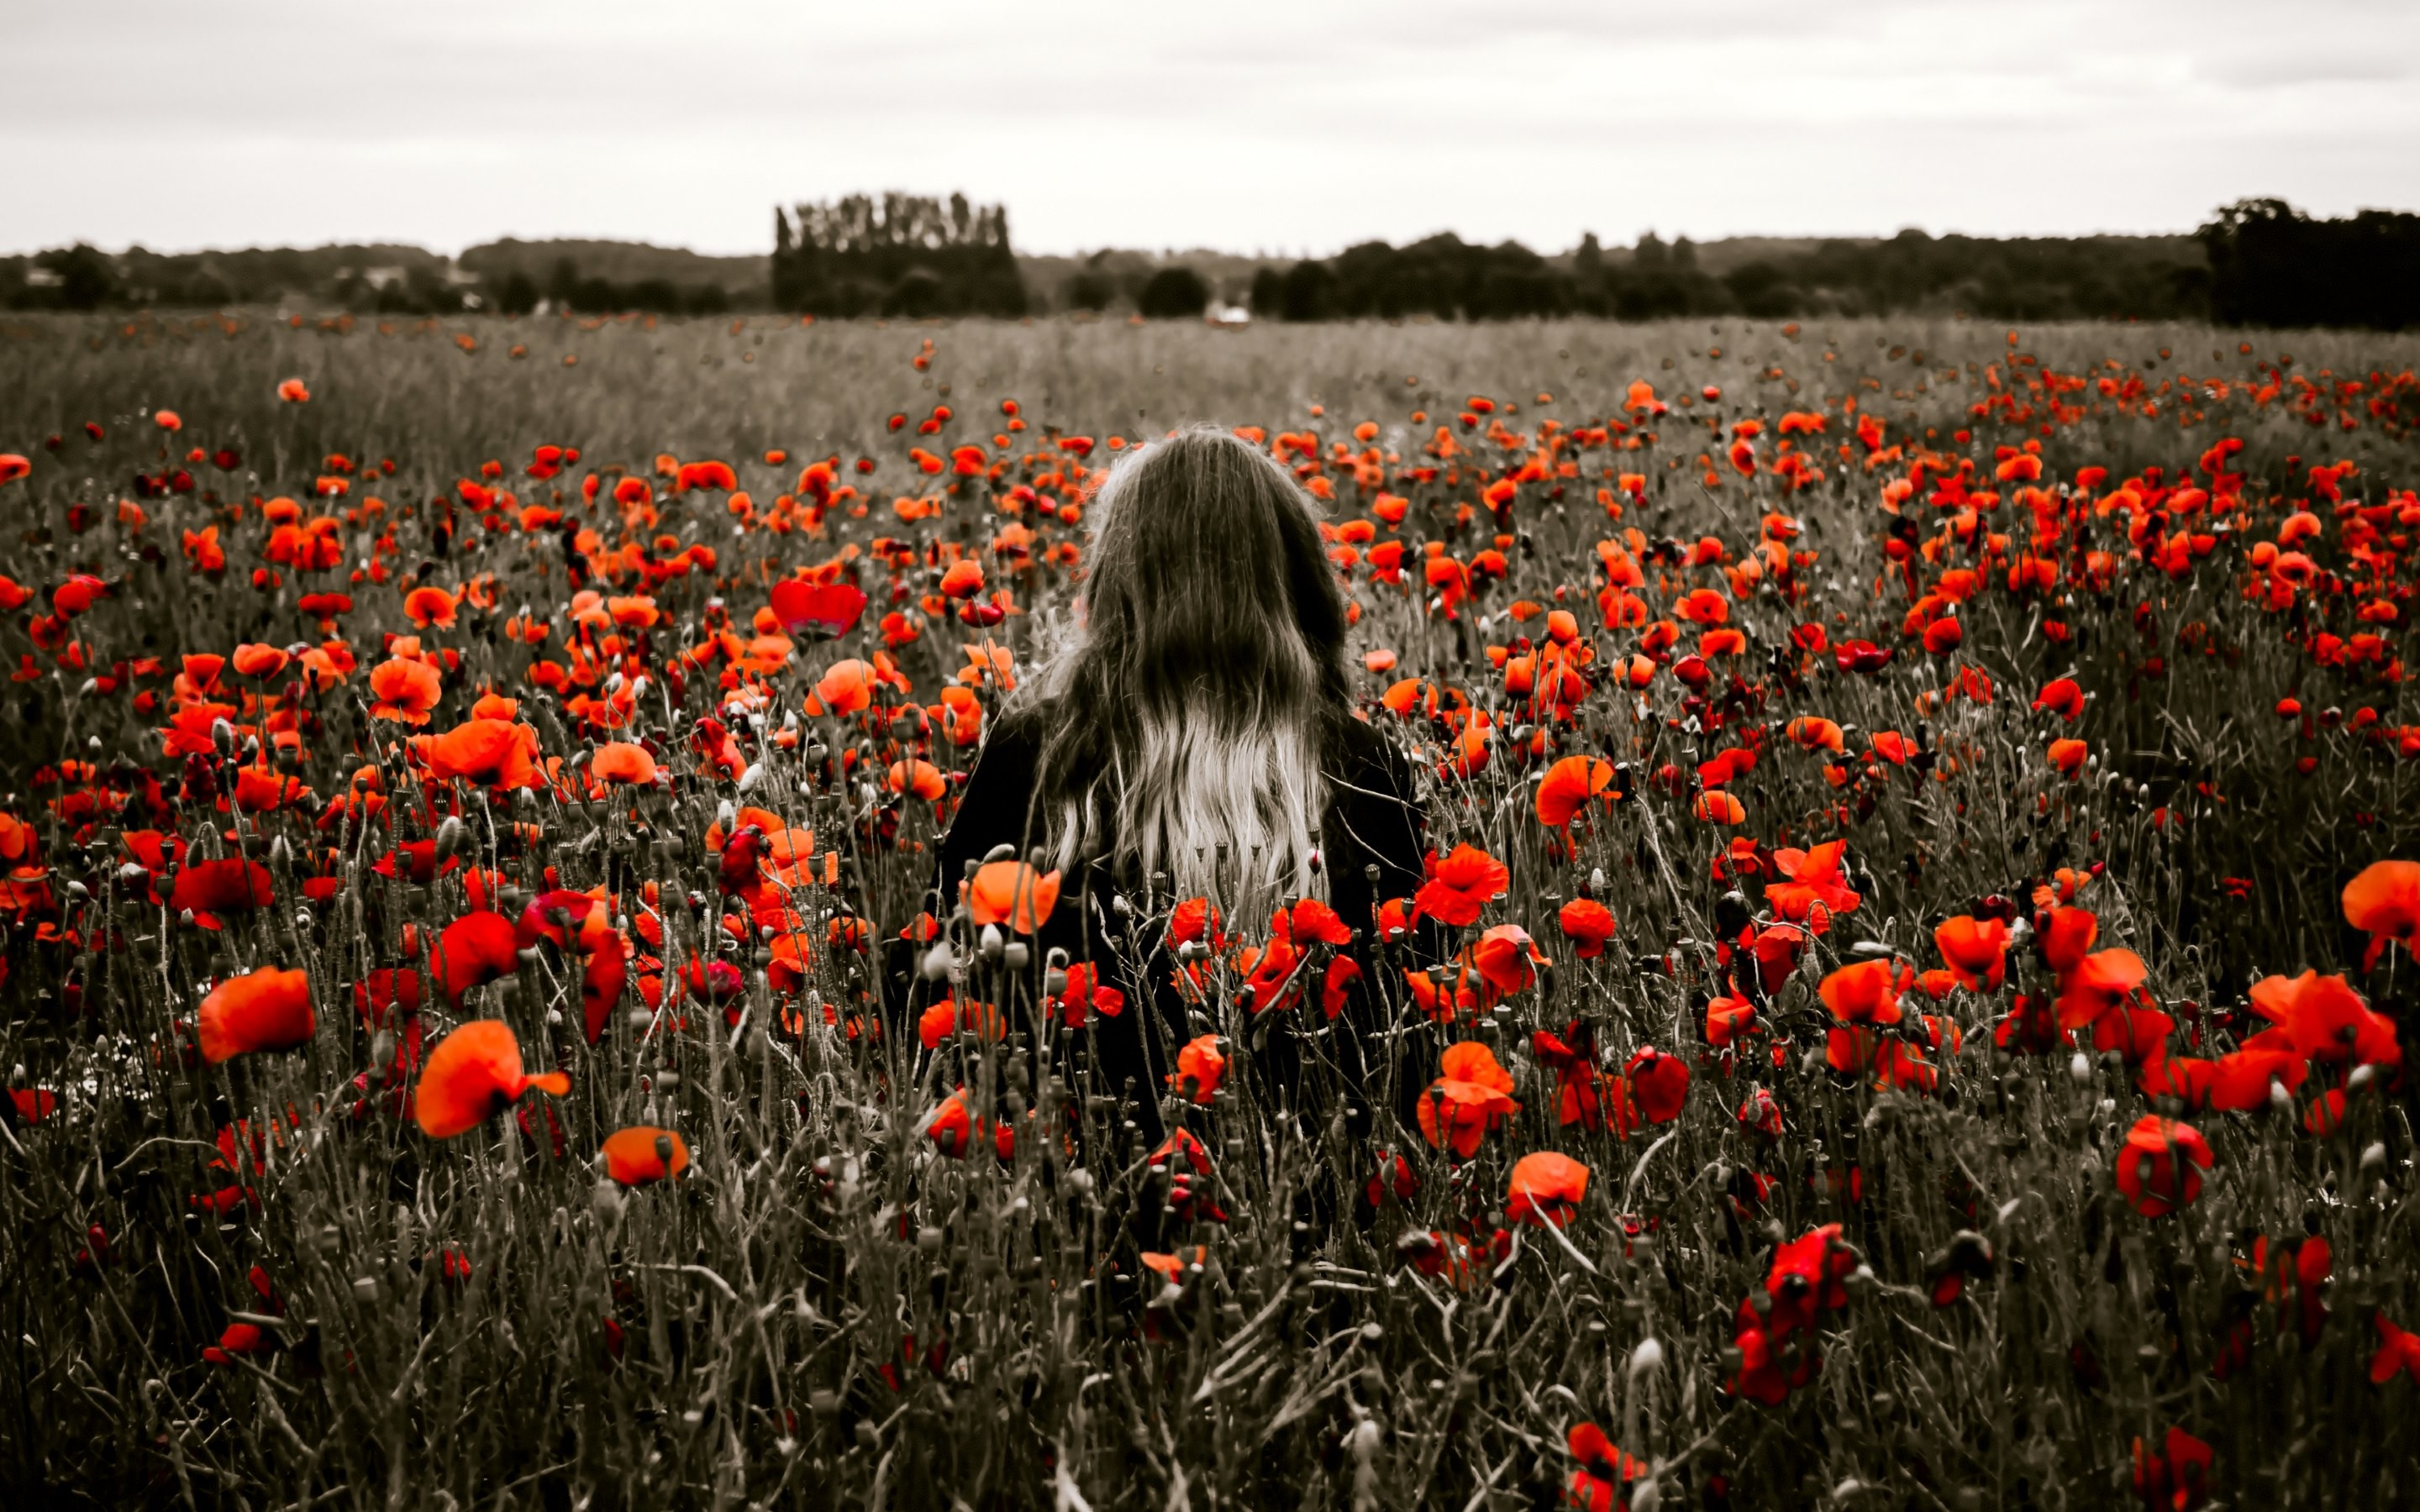 field of poppies wallpaper (50+ images)